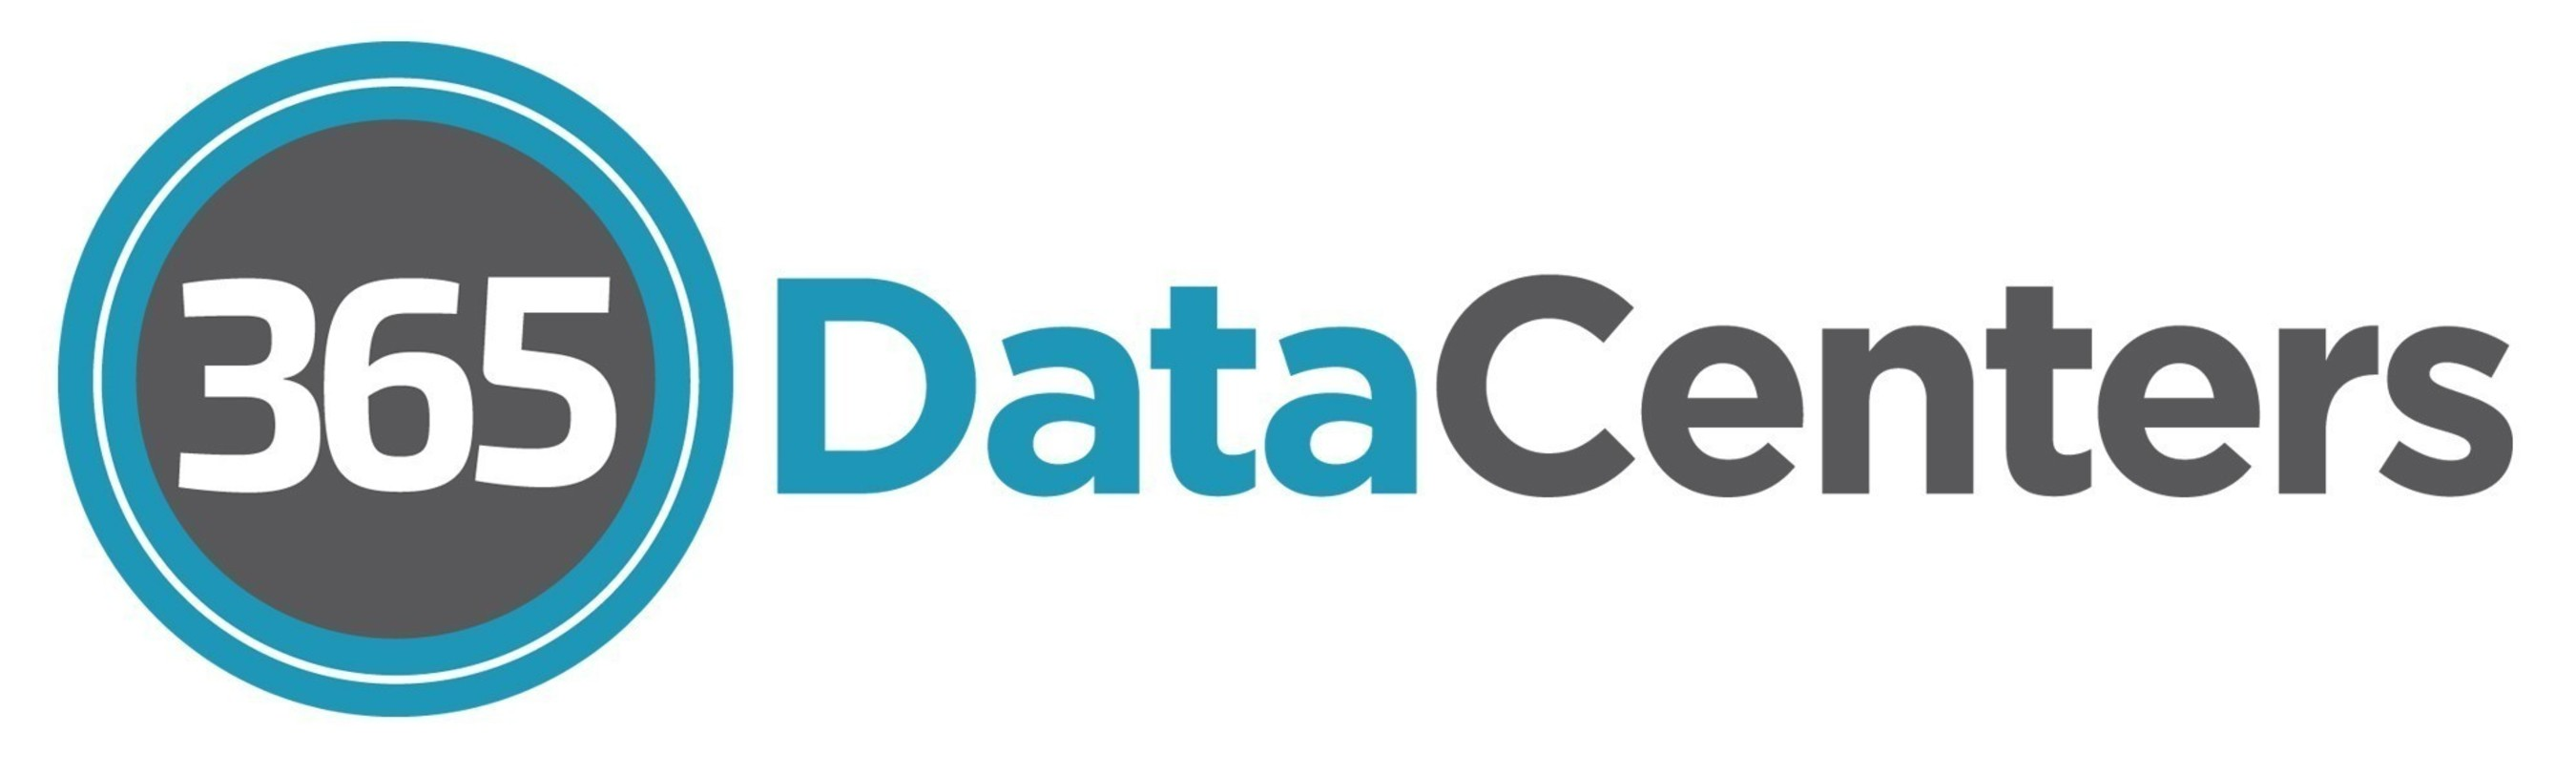 managedway selects s detroit data center to expand network